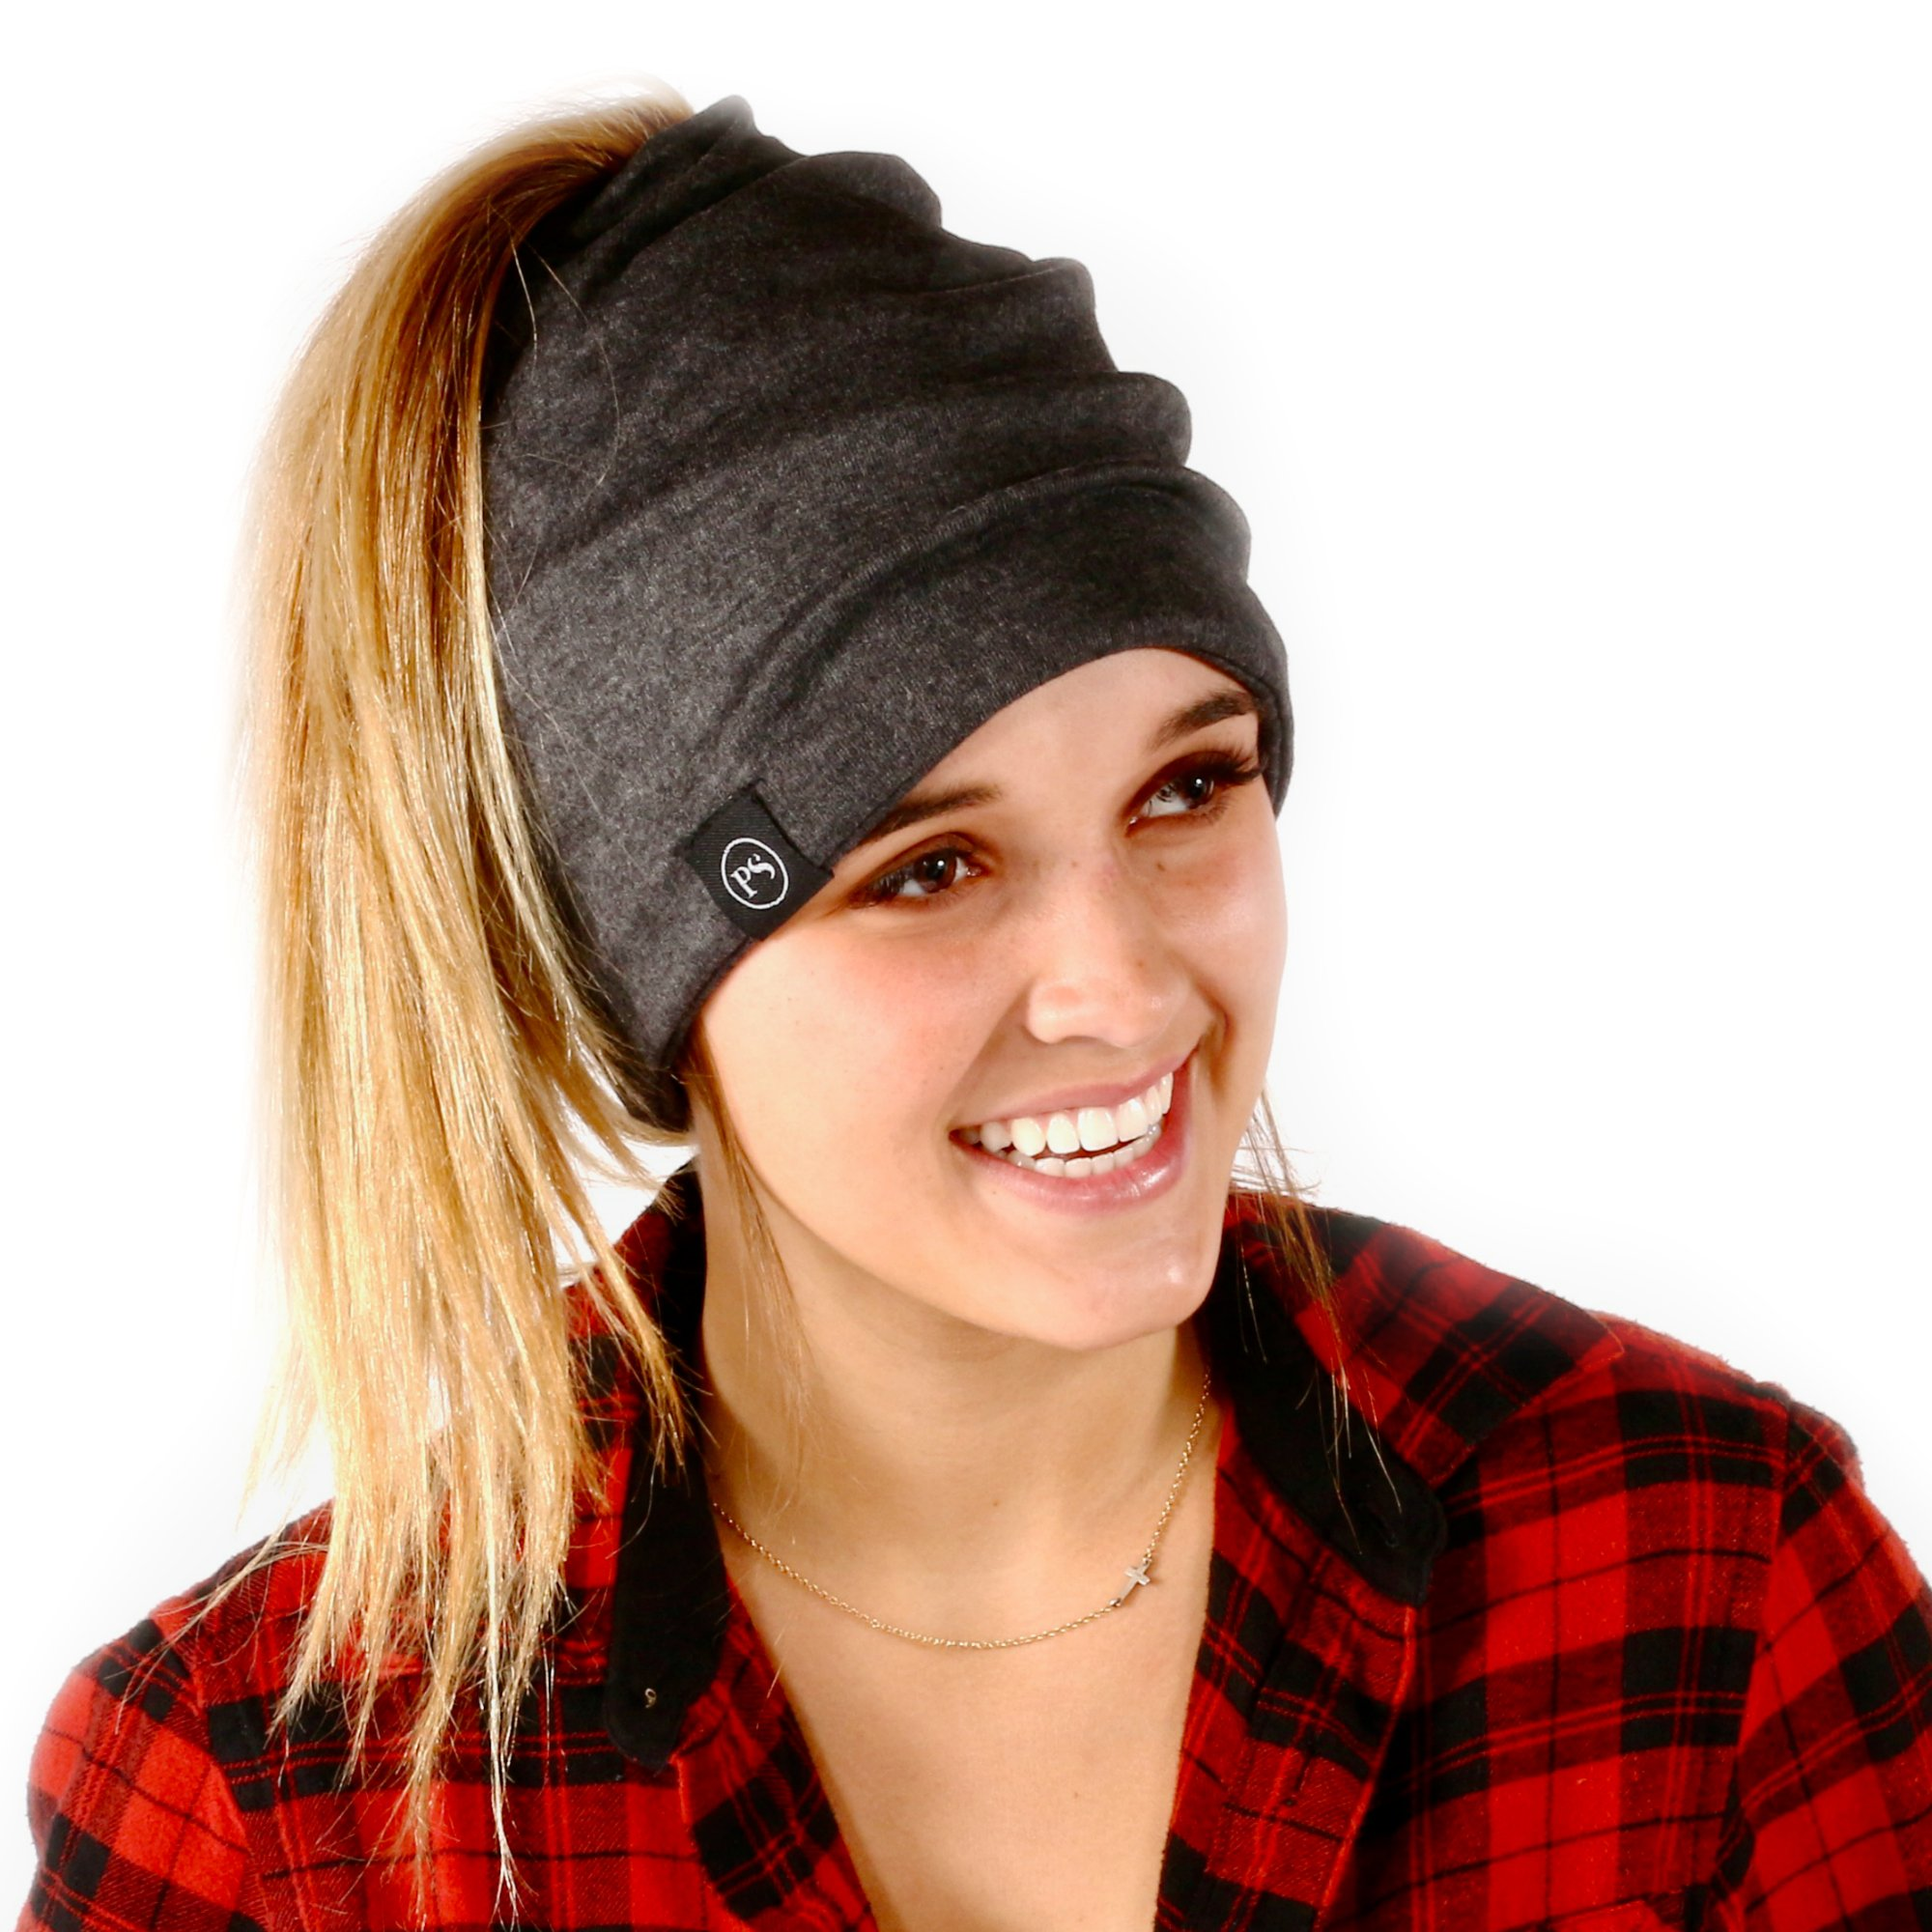 Peek a Boo Women's Beanie Slouchy Beanie with Hole for Pony Tail or Sloppy Bun perfect for Work Out by Pretty Simple (Charcoal)